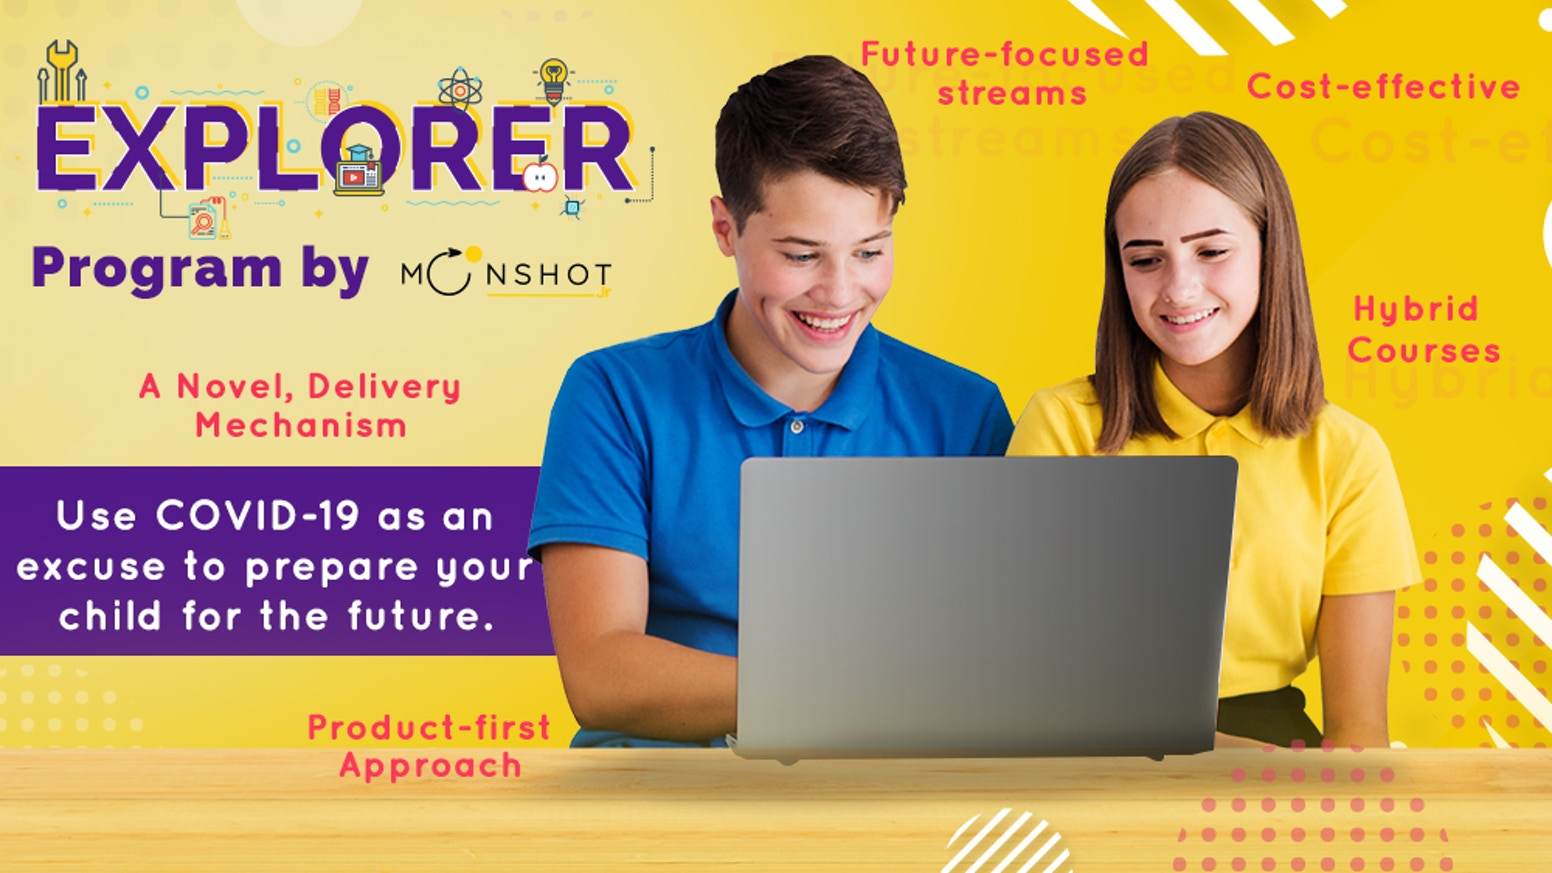 Want your child to explore their passion & get an entrepreneurial mindset? This program is for you! (e-learning, online course)